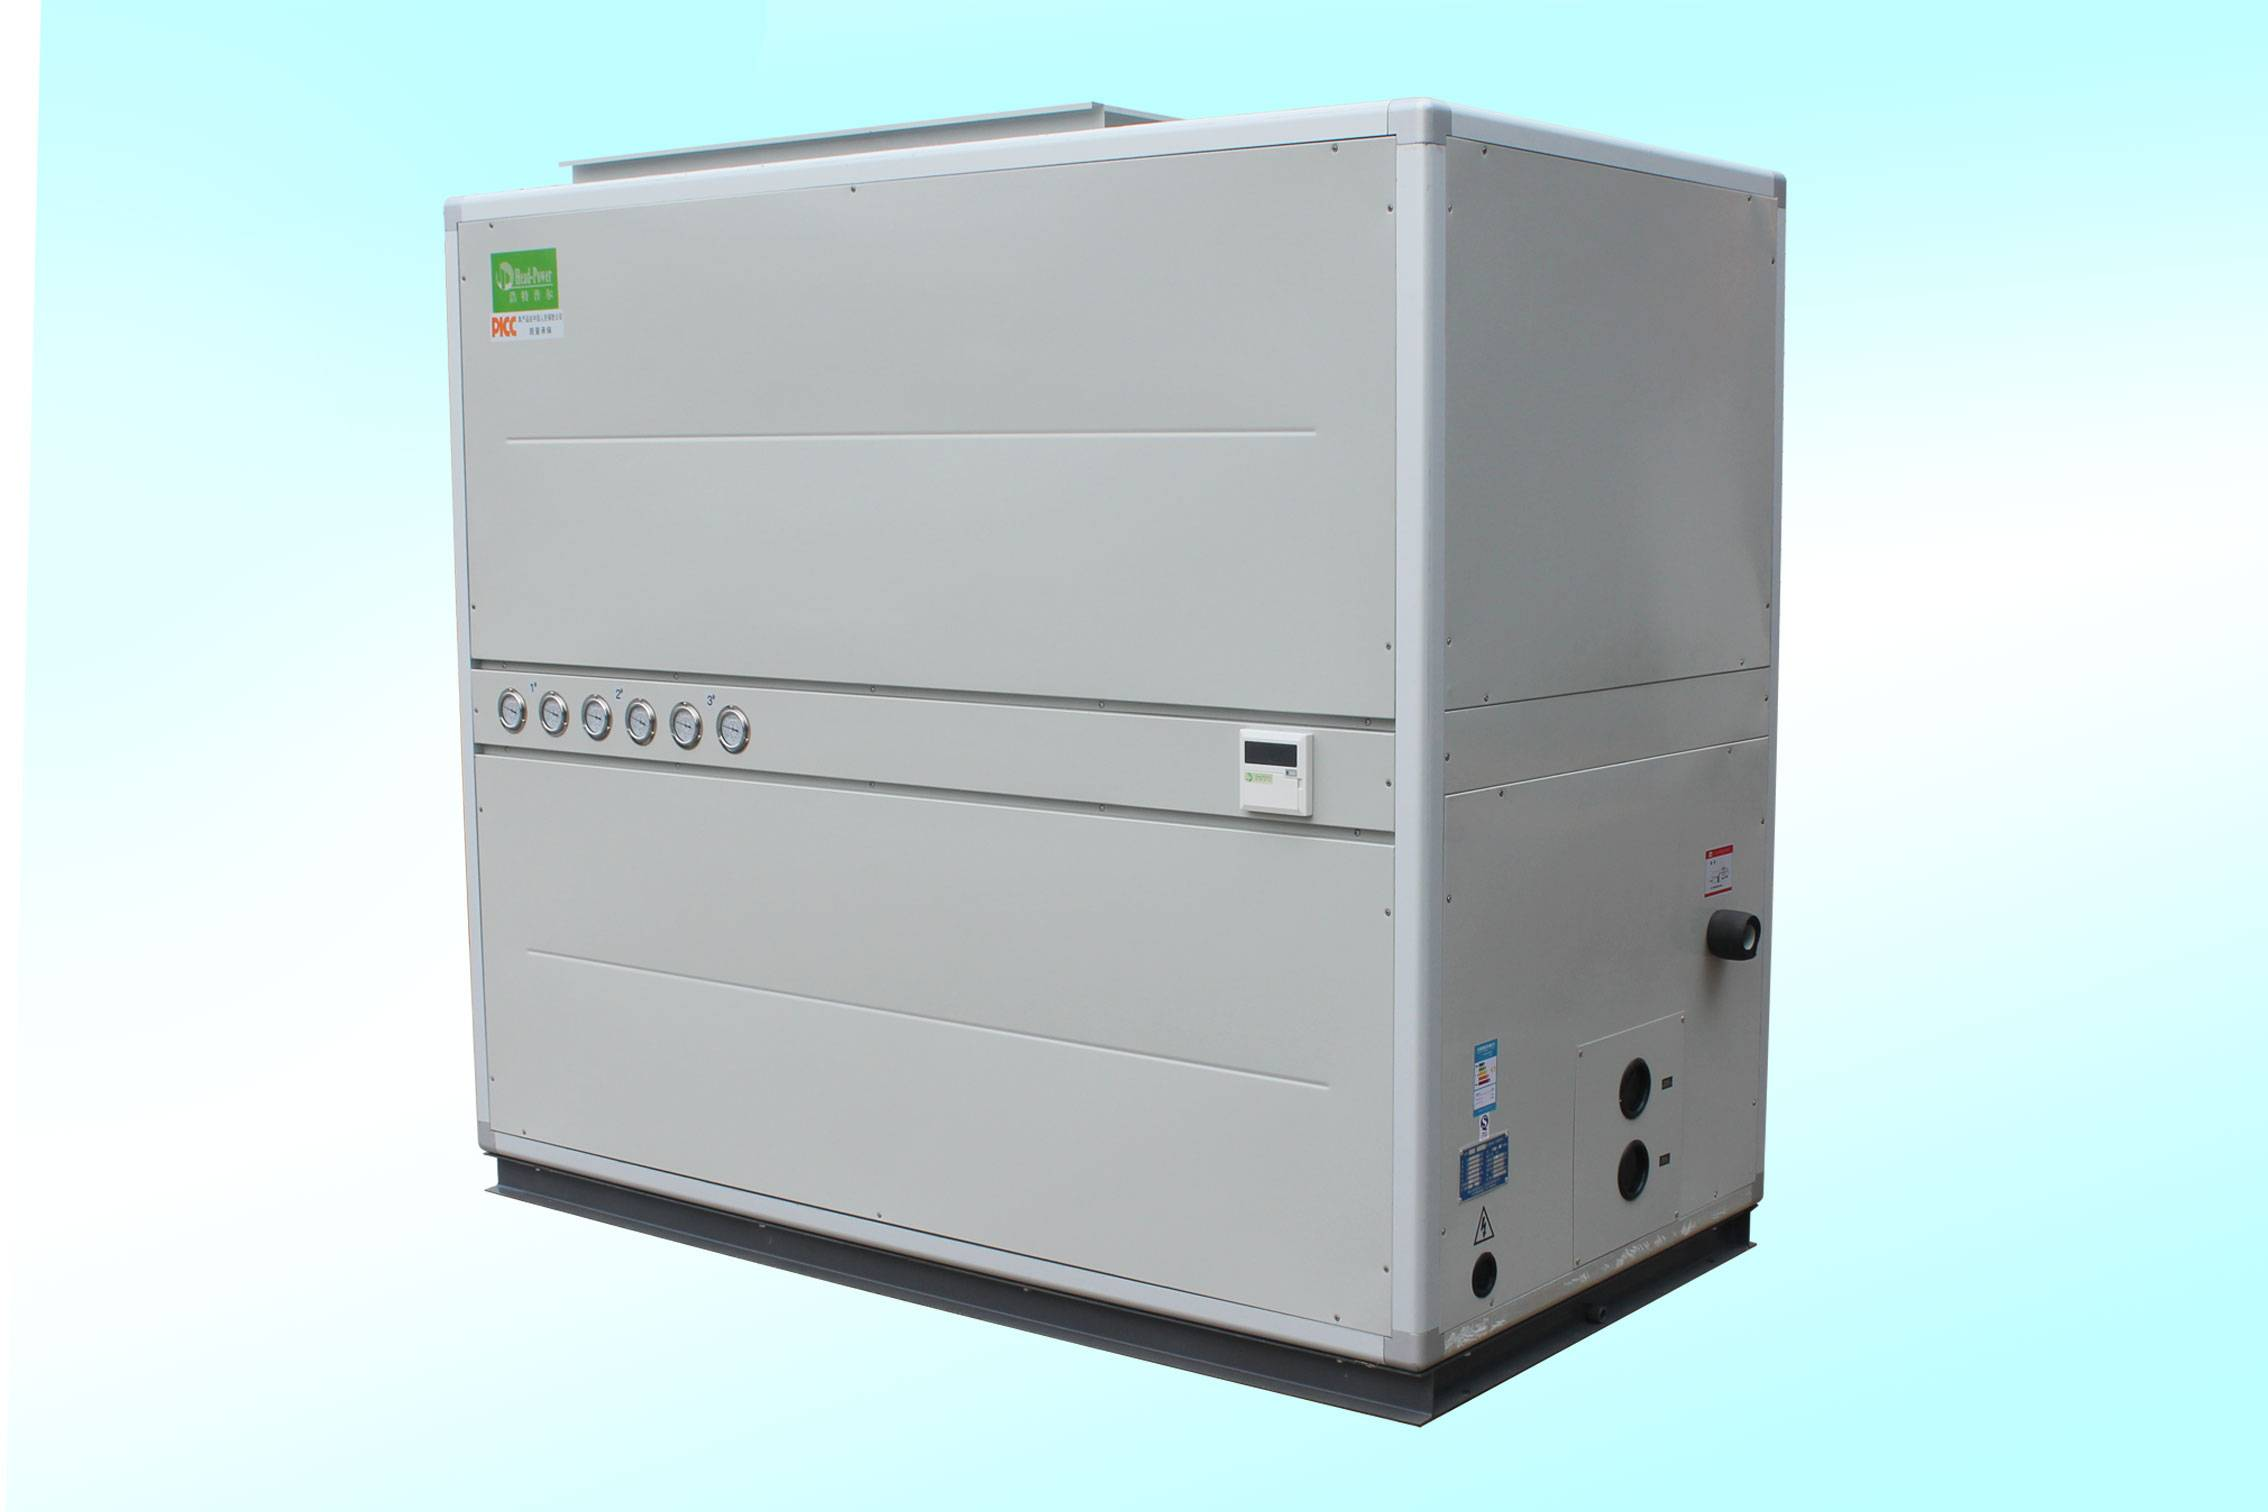 #488E3D R410A Packaged Air Conditioners Ducted Water Cooled  Top of The Line 13344 Packaged Air Conditioner Unit picture with 2268x1512 px on helpvideos.info - Air Conditioners, Air Coolers and more